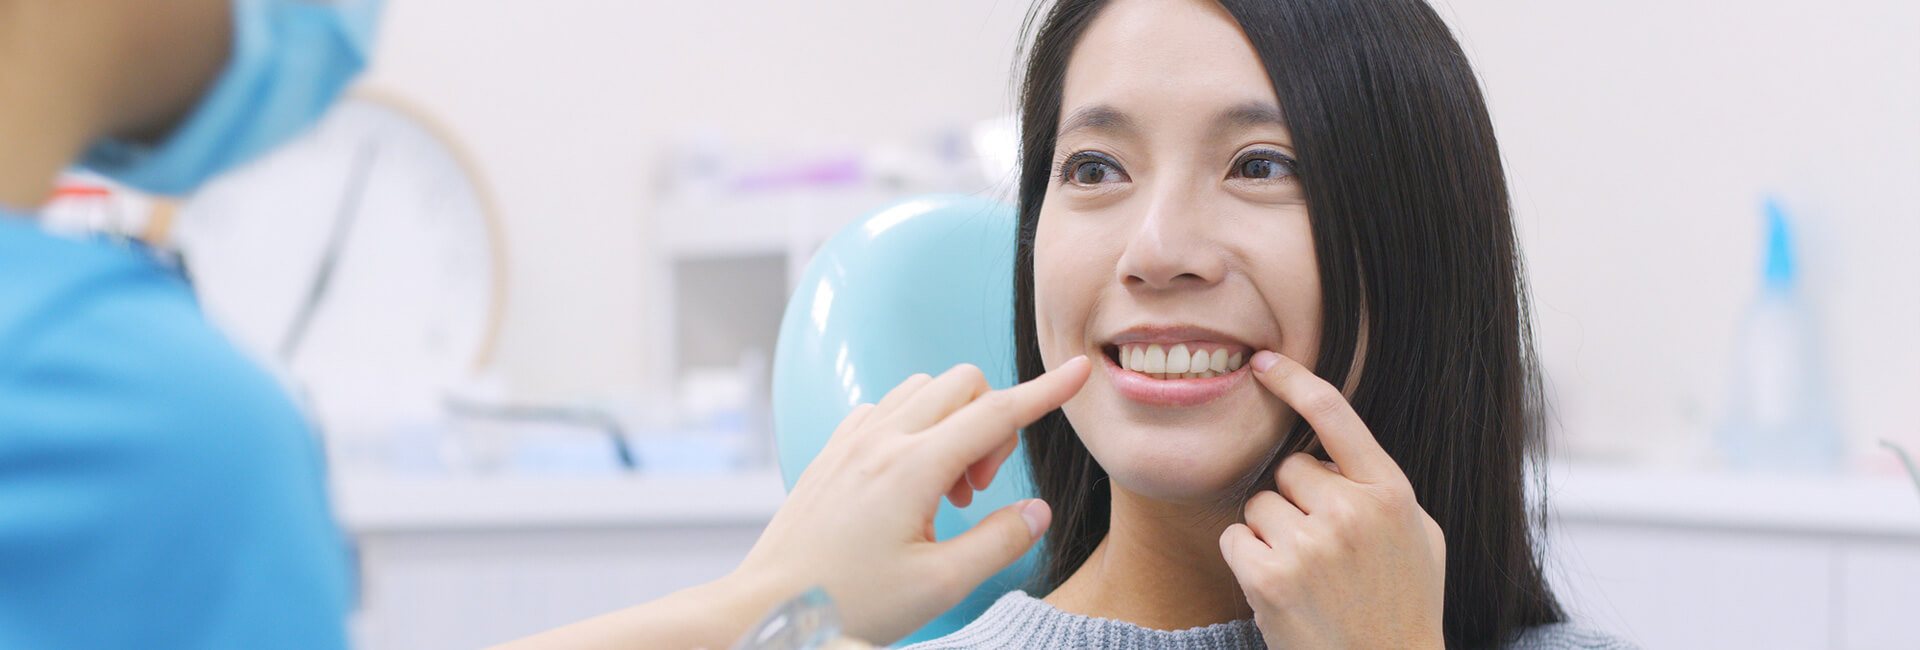 Young woman pointing at her teeth seated on dental chair